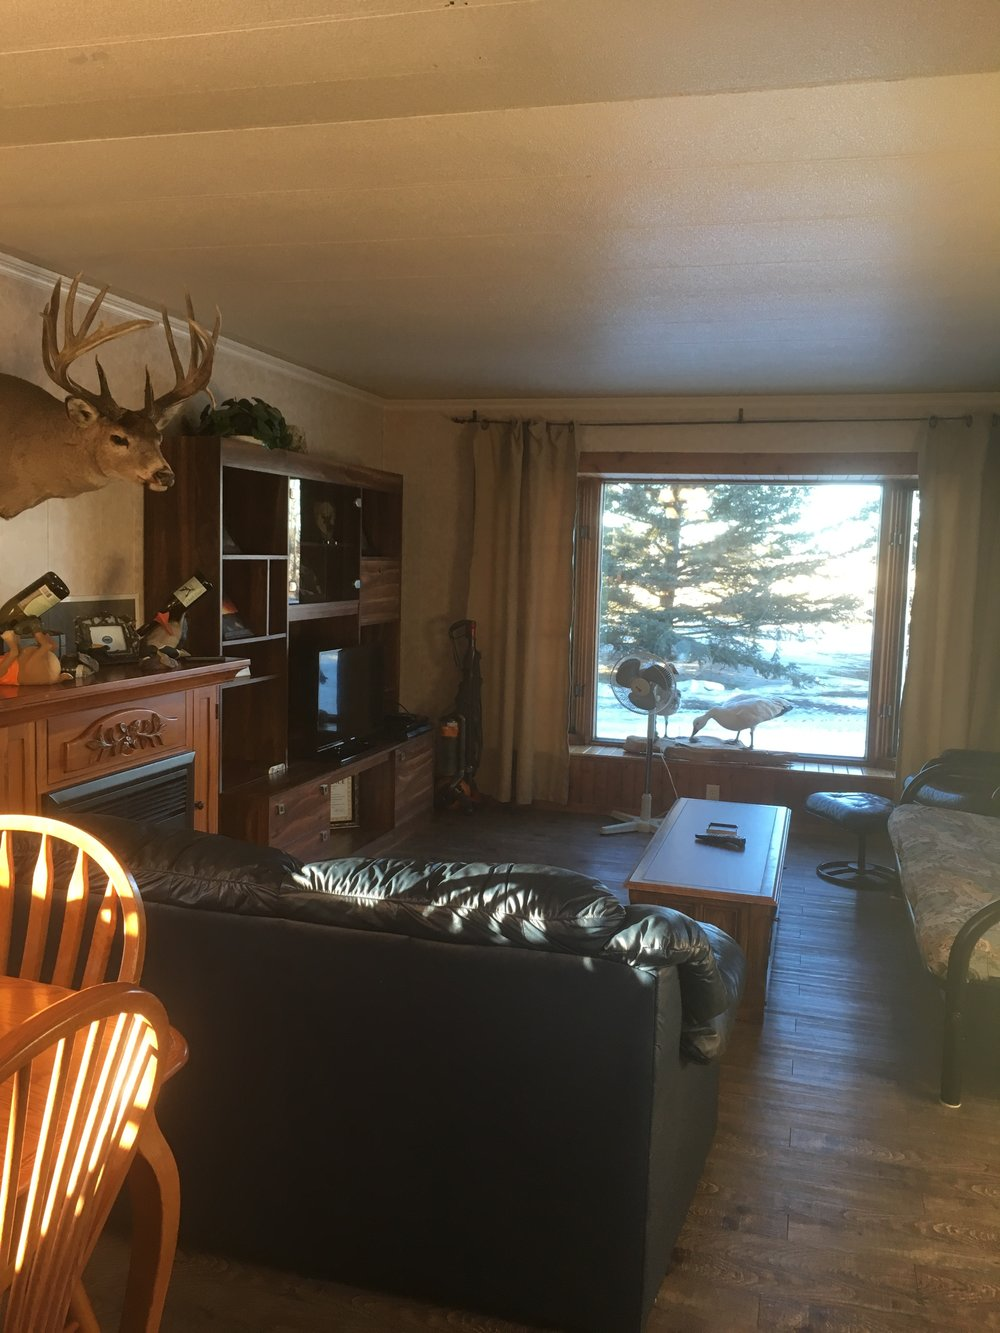 Rental house living room - Hunting Lodge Saskatchewan Canada